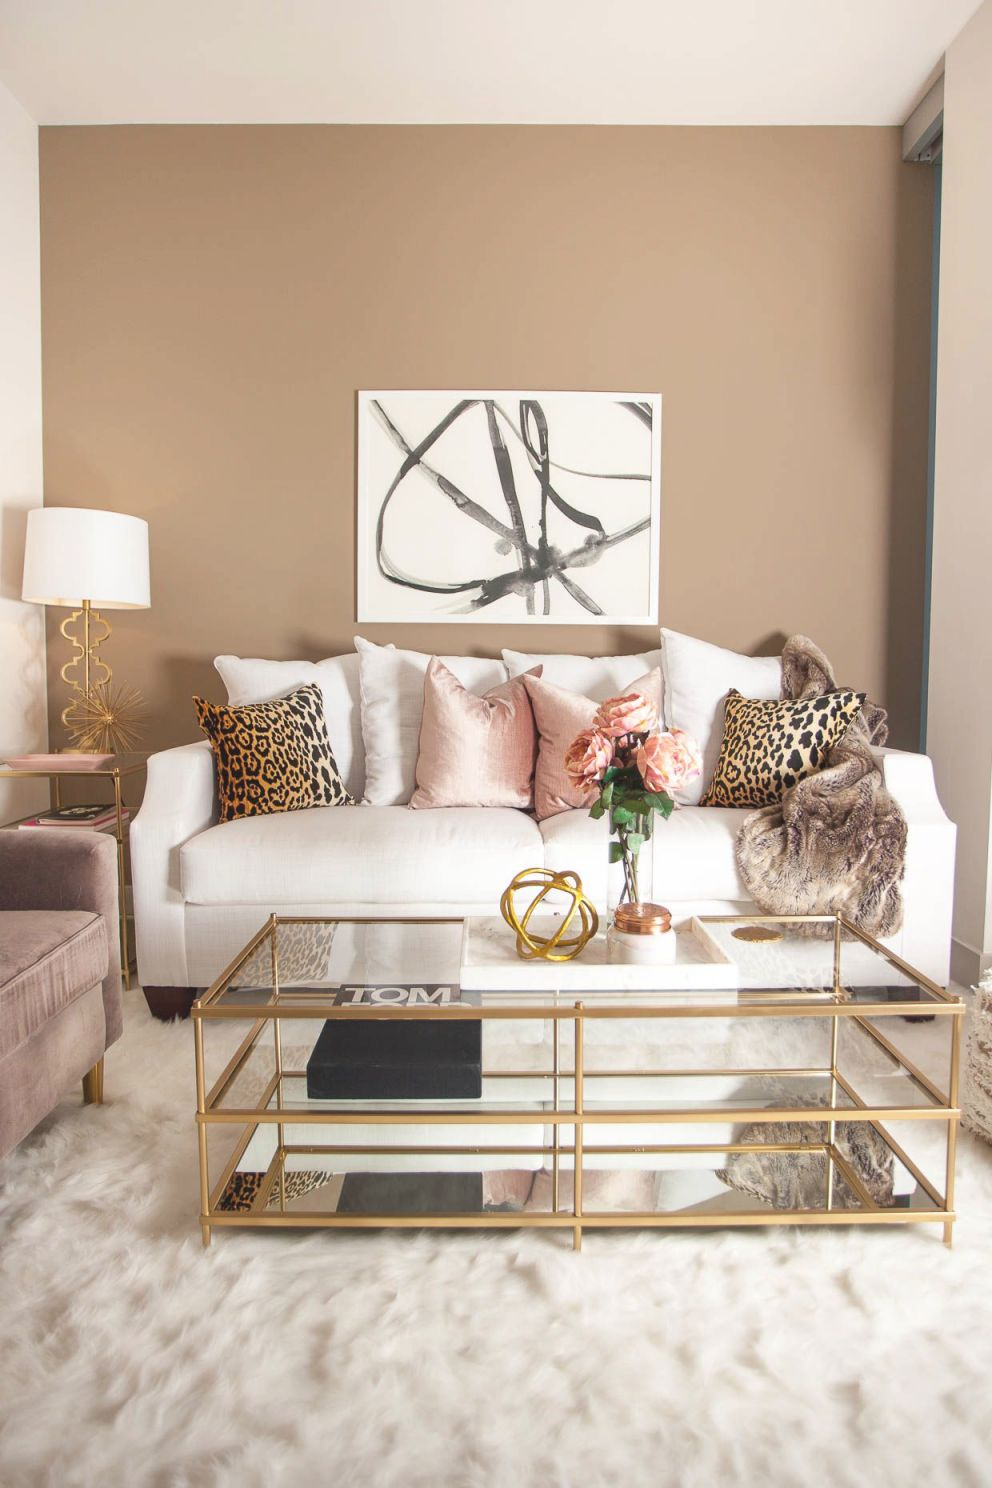 At Home Styling With Animal Print Interior Design Pertaining To Animal Print Living Room Decor Awesome Decors